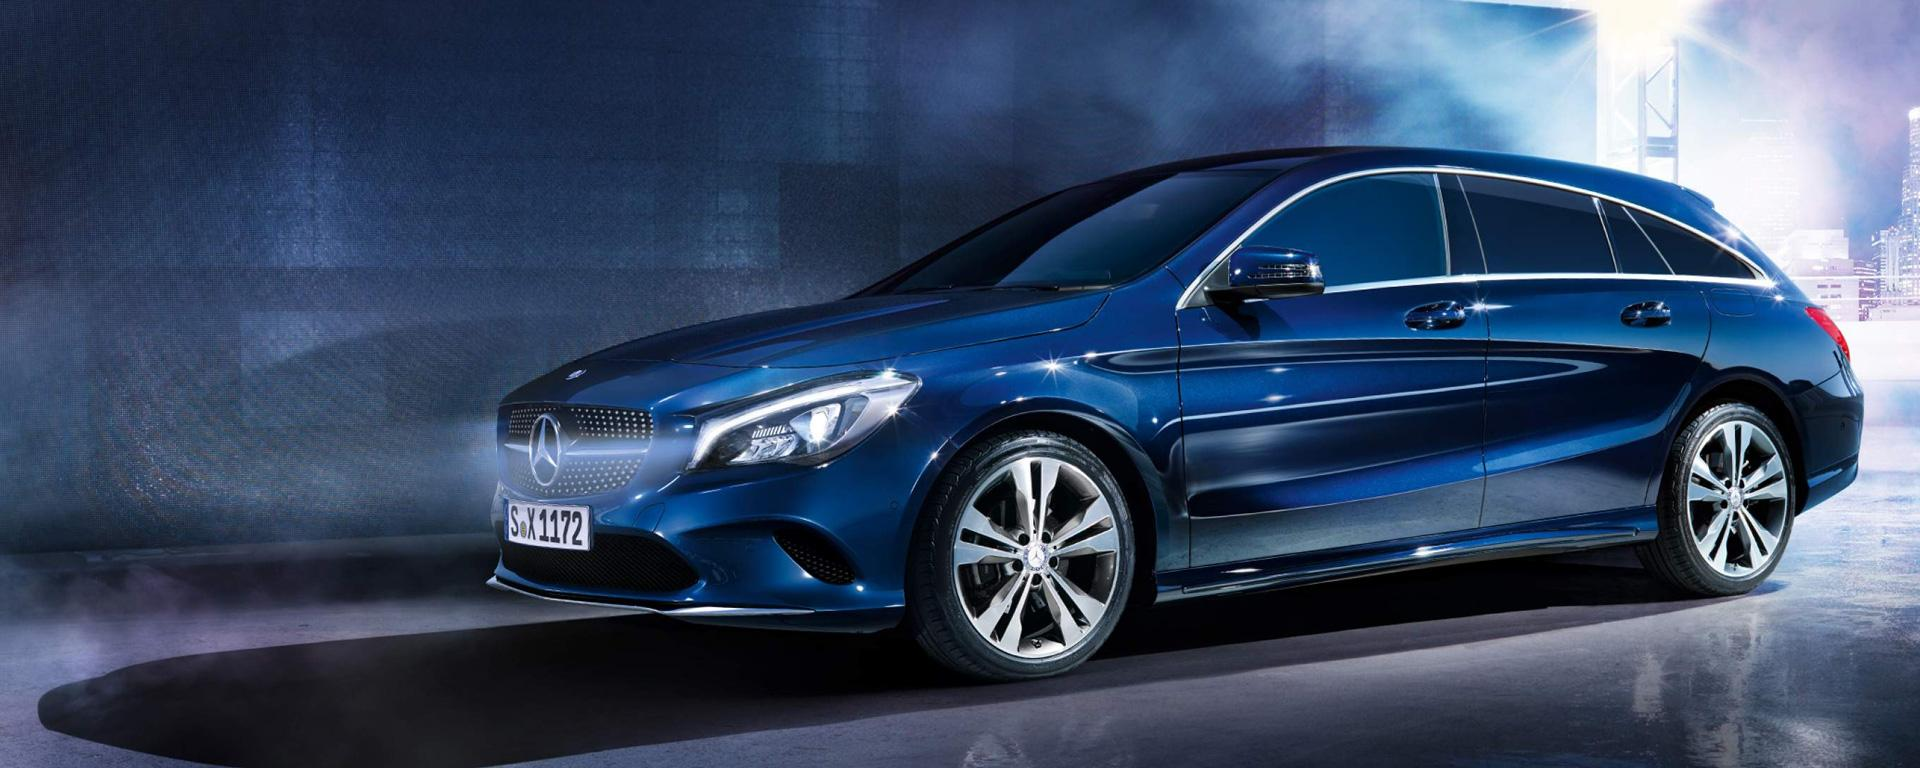 Mercedes-Benz CLA Shooting Brake leasen